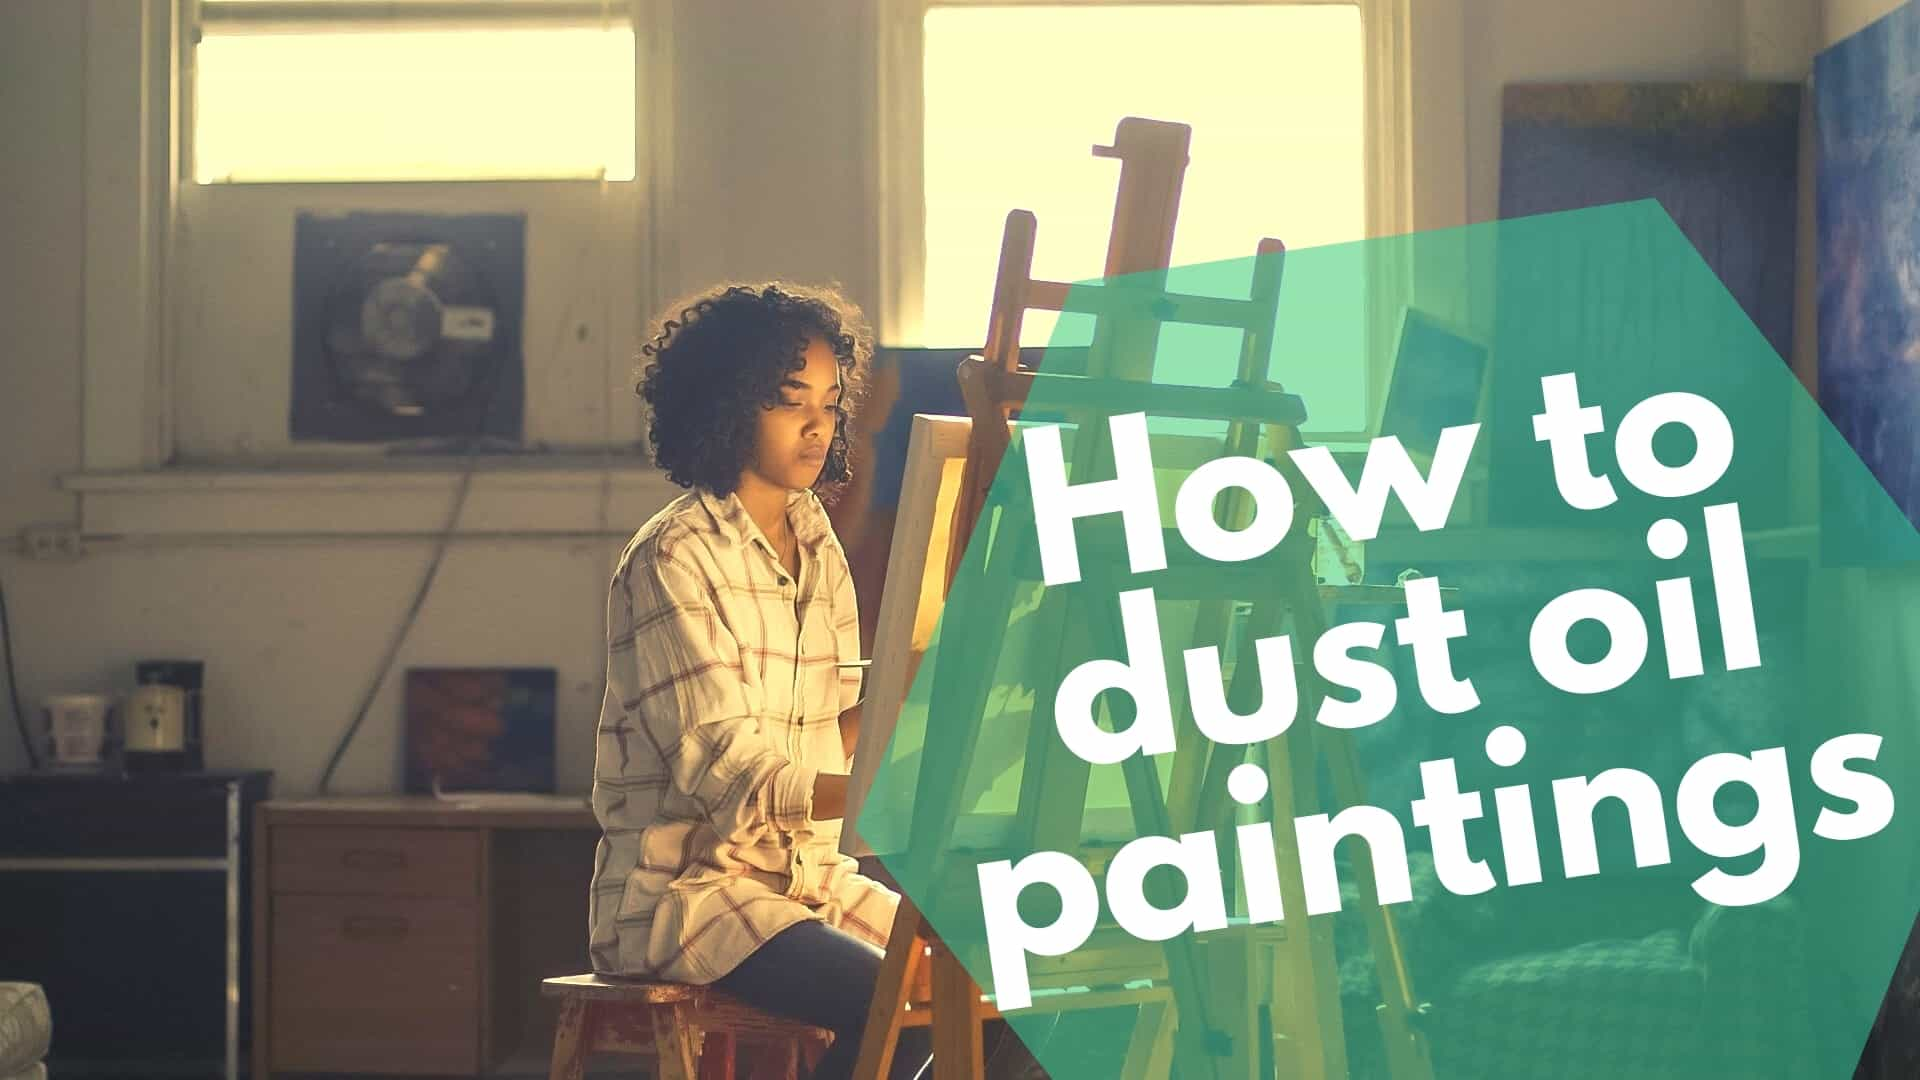 How to dust oil paintings